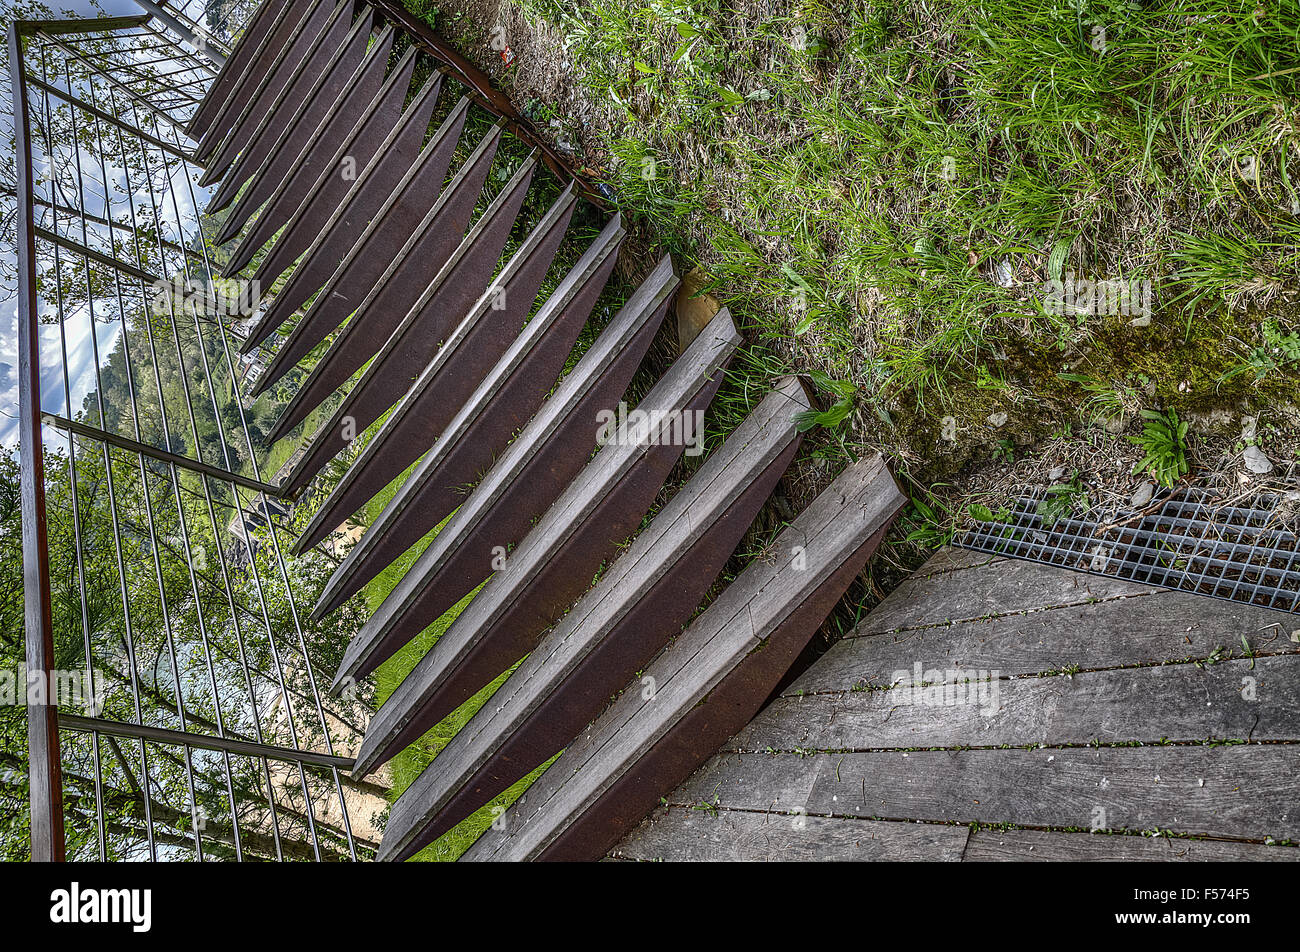 Stairs inside the park in Spain. The image is HDR with great detials - Stock Image